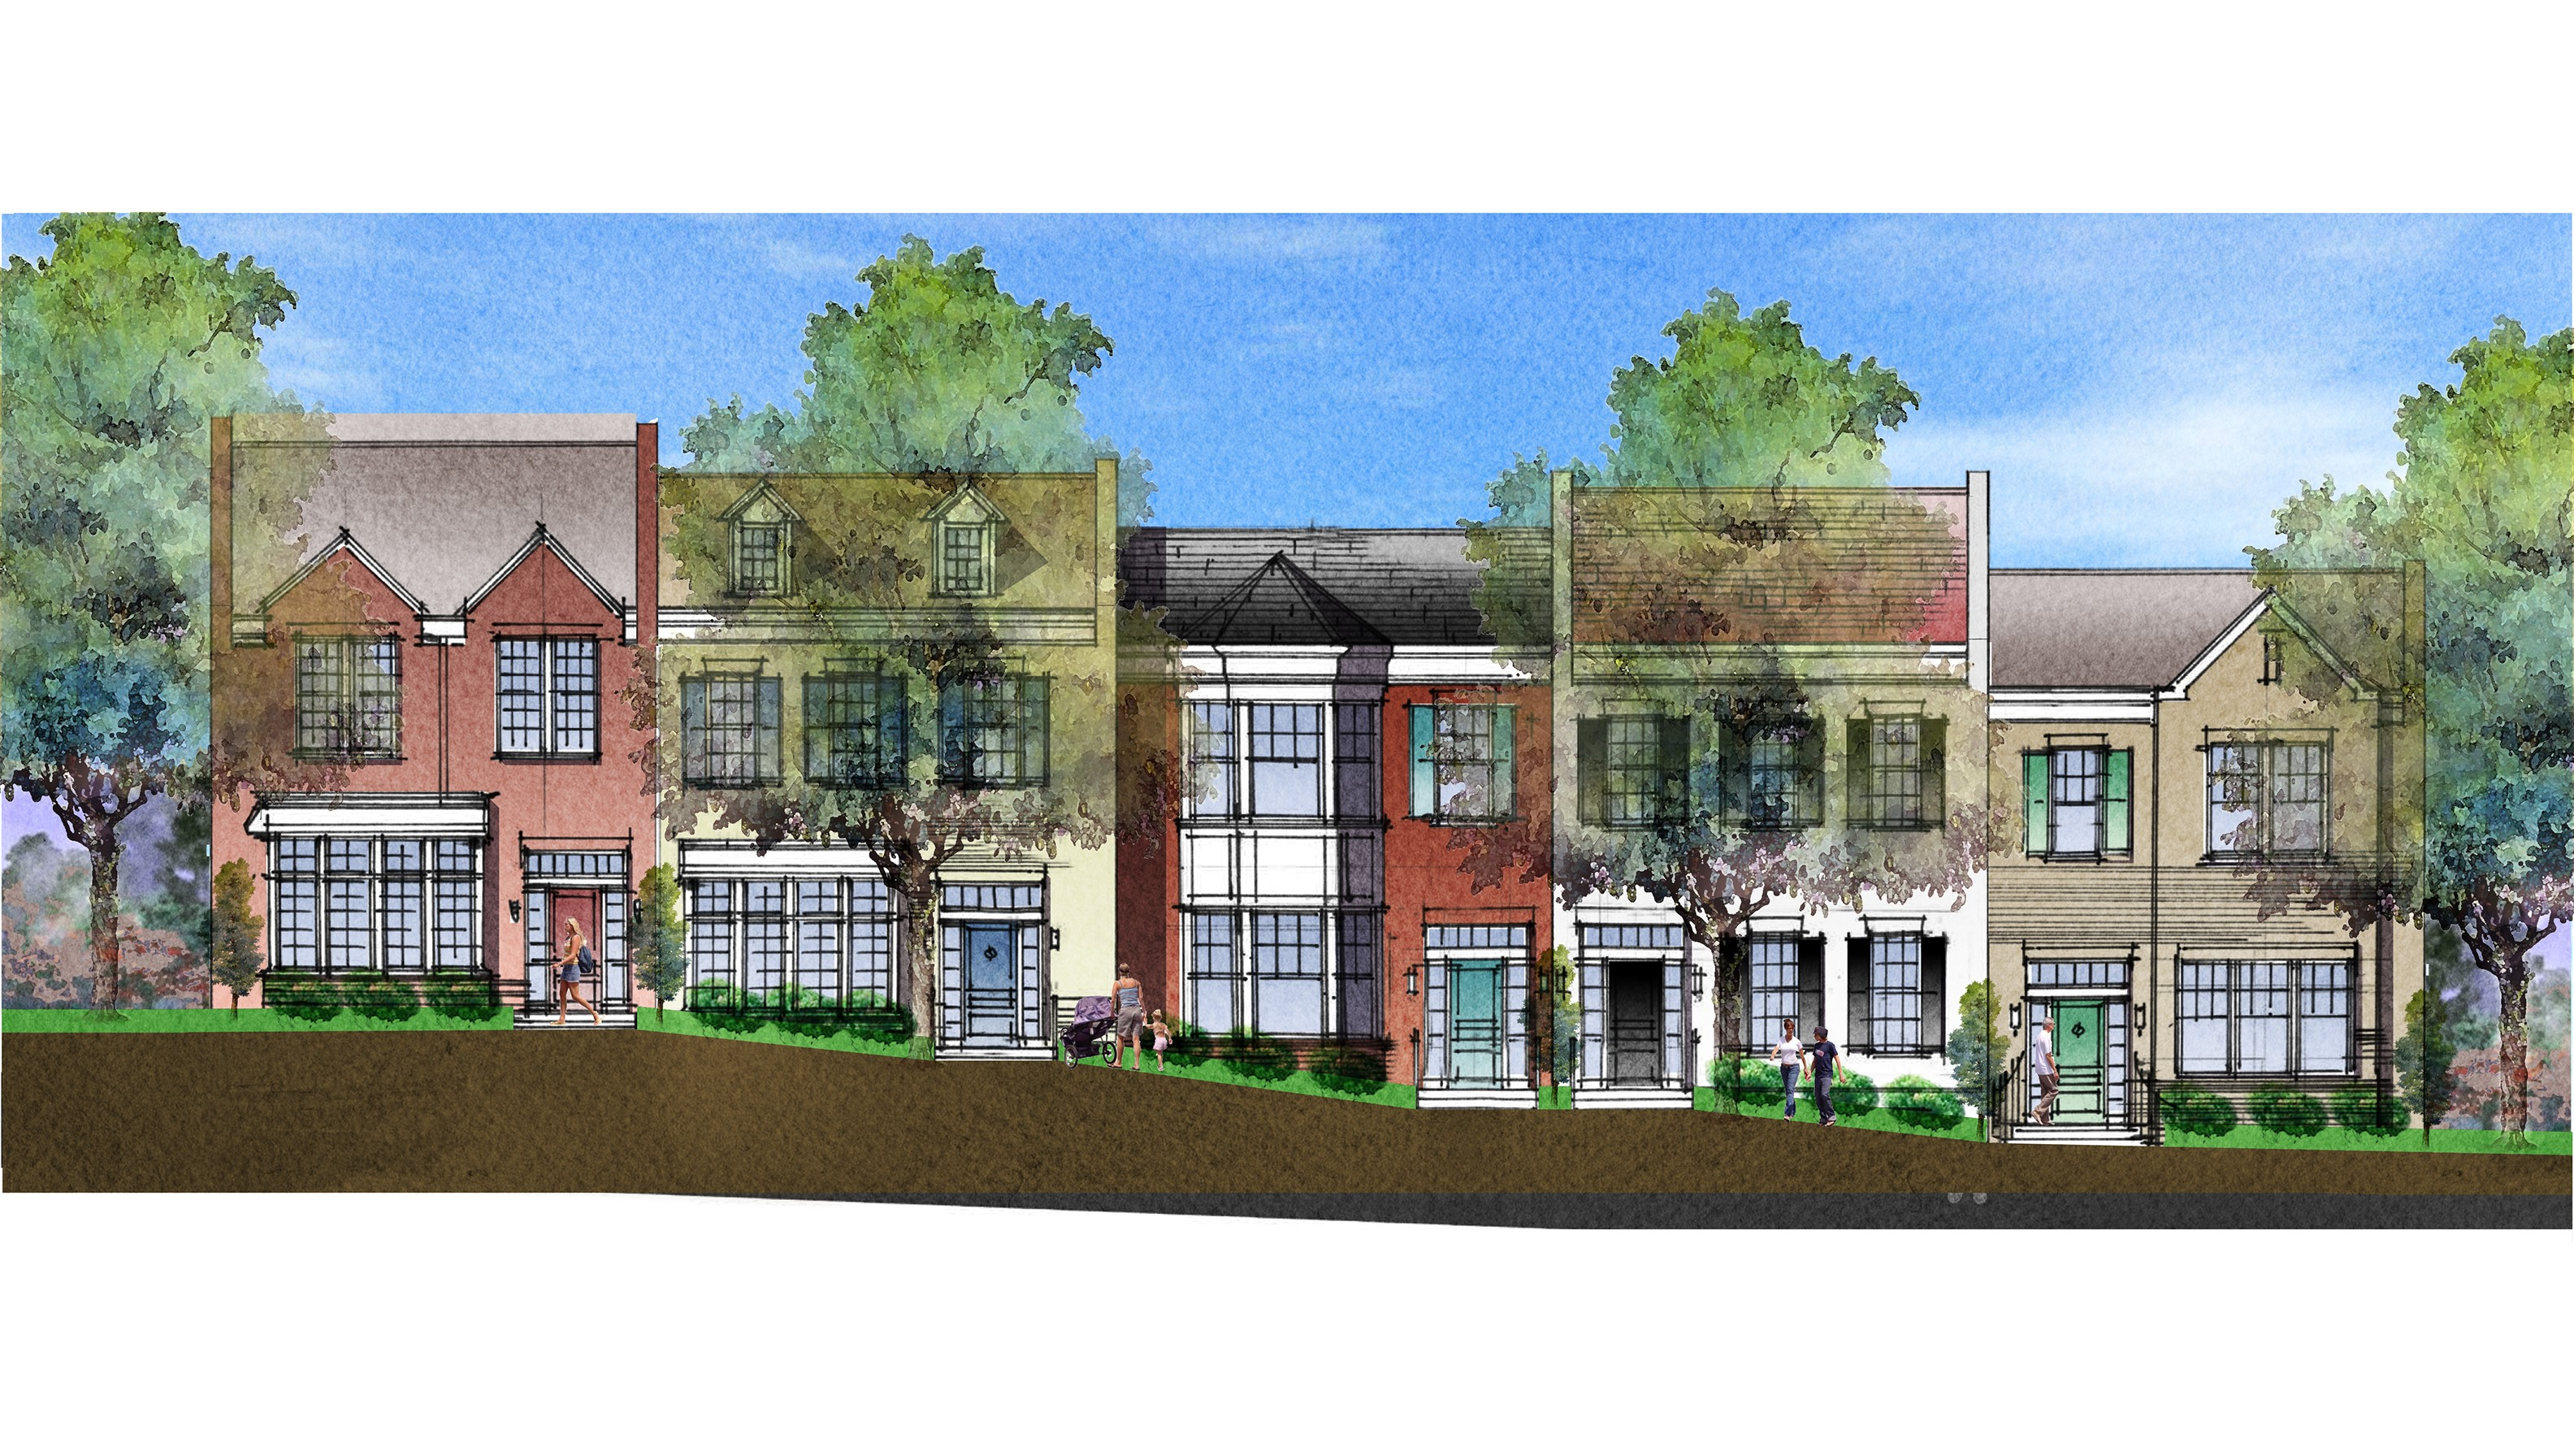 Rendering shows the variety of facade designs of townhouses to be built along Hopkins Lane on the Bancroft site.